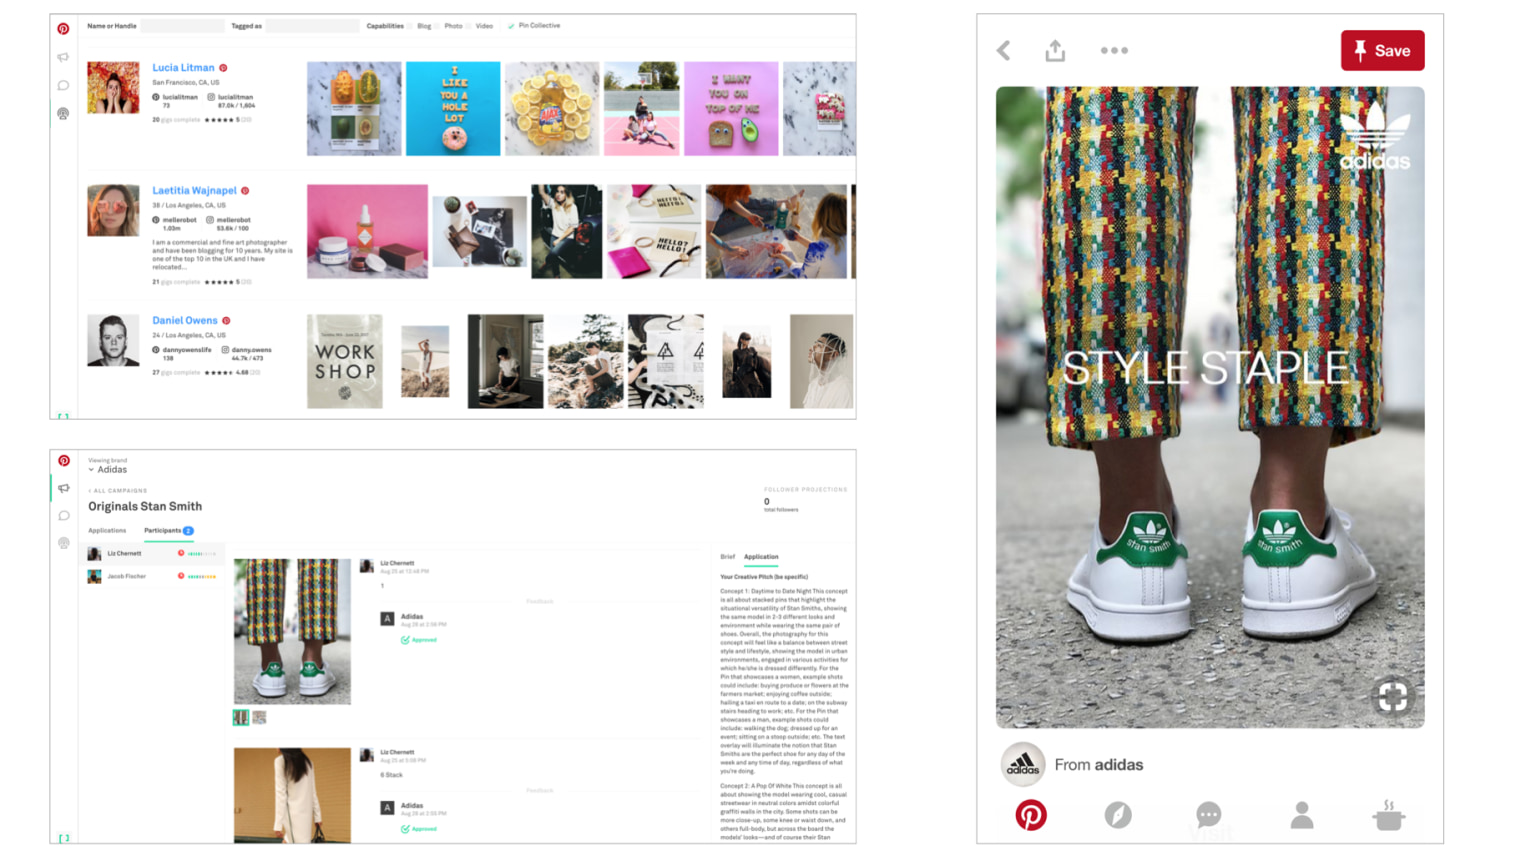 Developed Pinterest's first custom content arm offering bespoke adverting creative for brands including Target, adidas, Clorox, Chase, Dunkin Donuts & more.